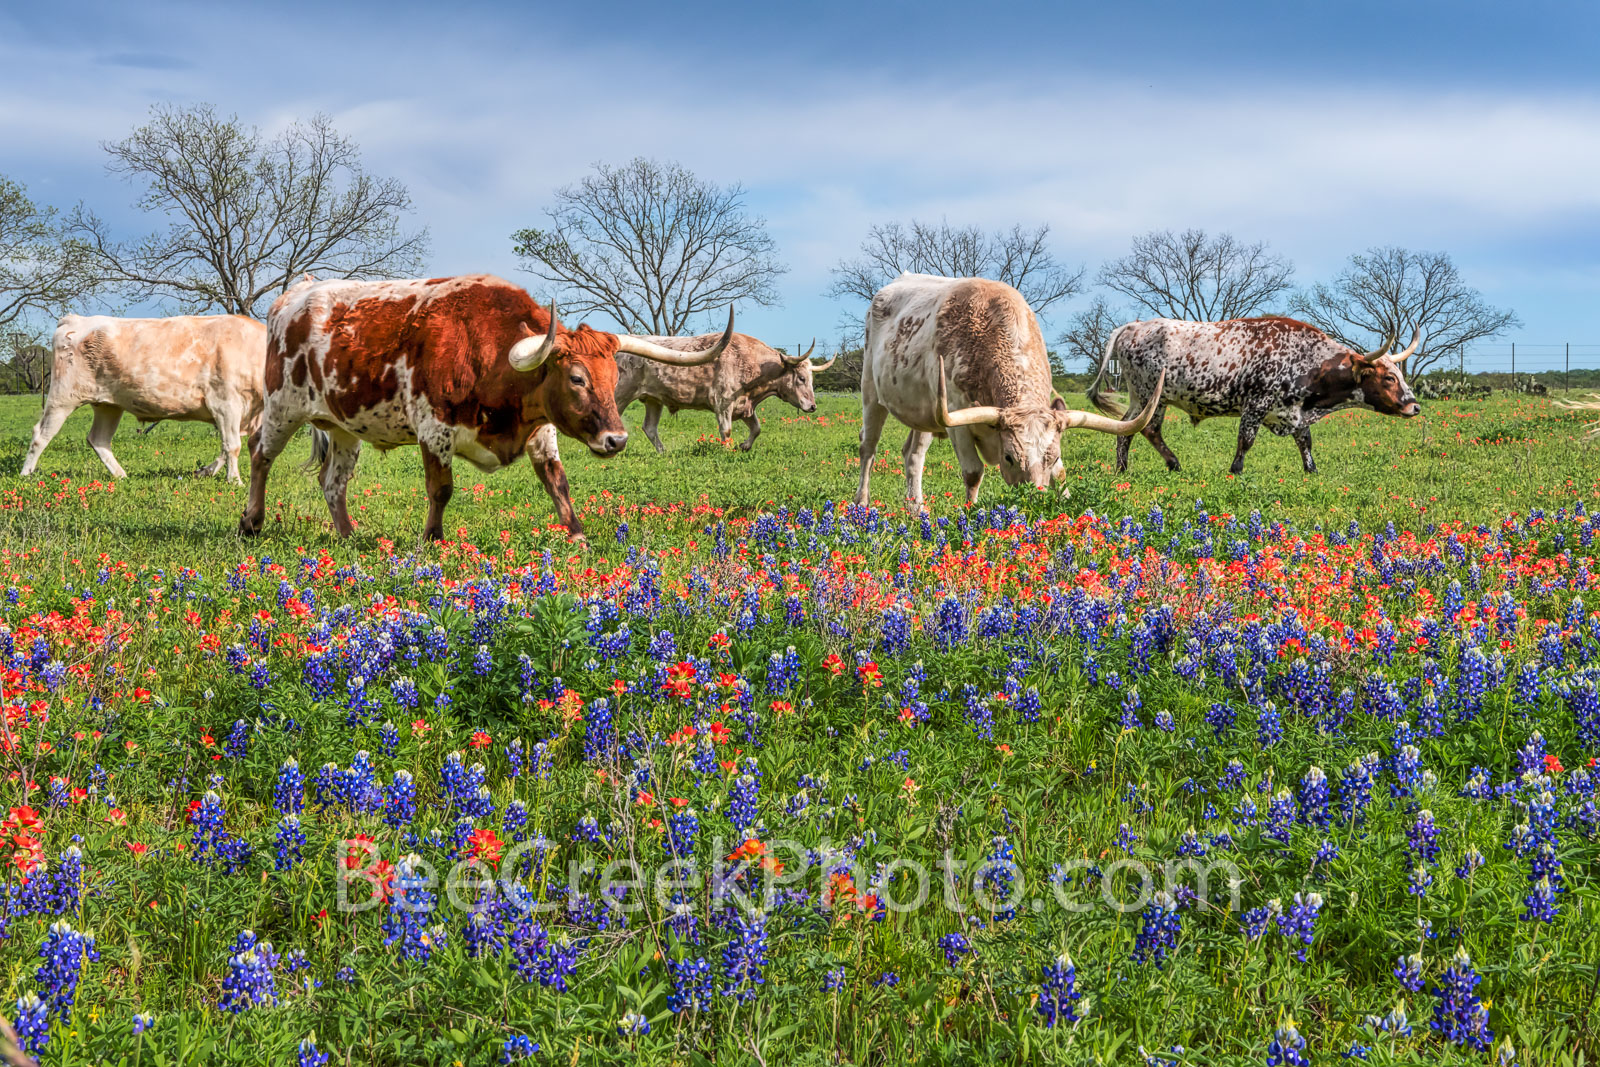 bluebonnets, indian paintbrush, wildflowers, texas wildflowers, longhorns, texas hill country, cattle, herd, steers, horns, hill country, ranch, texas cattle, texas longhorns, blue bonnets, longhorns,, photo